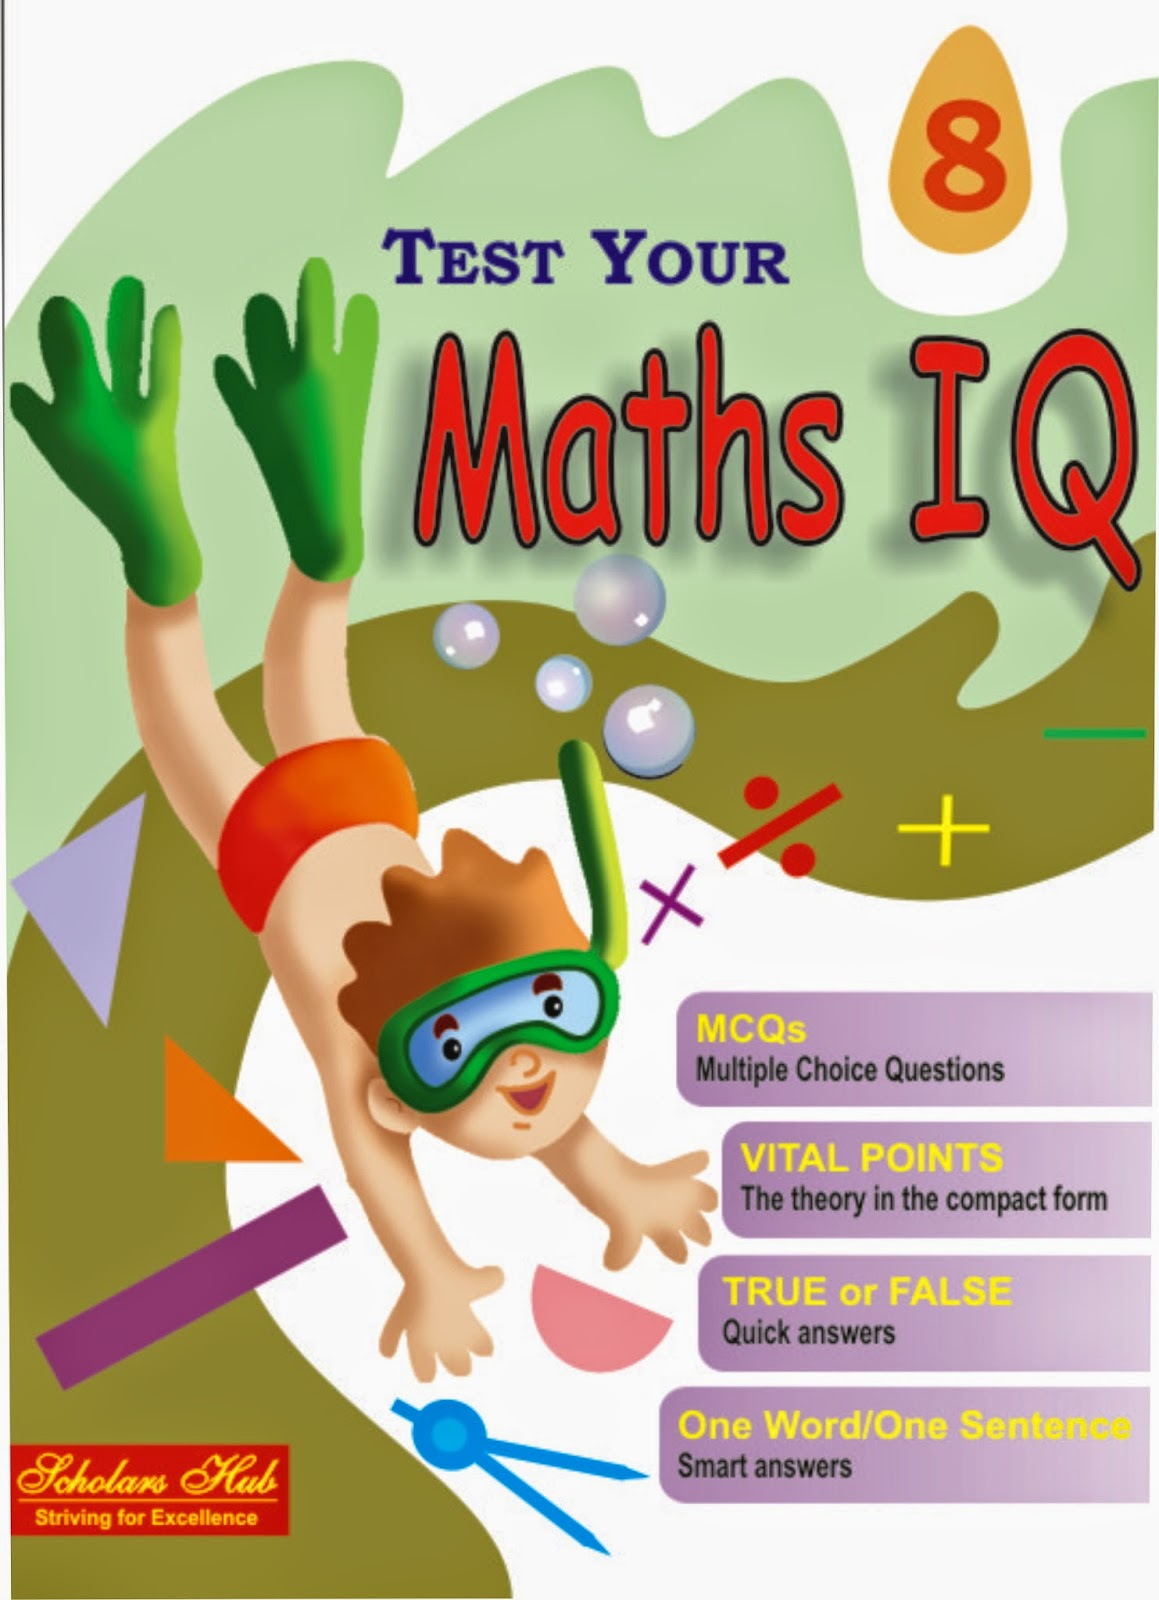 Test Your Maths IQ Books Class VI TO X MOST POPULAR BOOK For MATHS